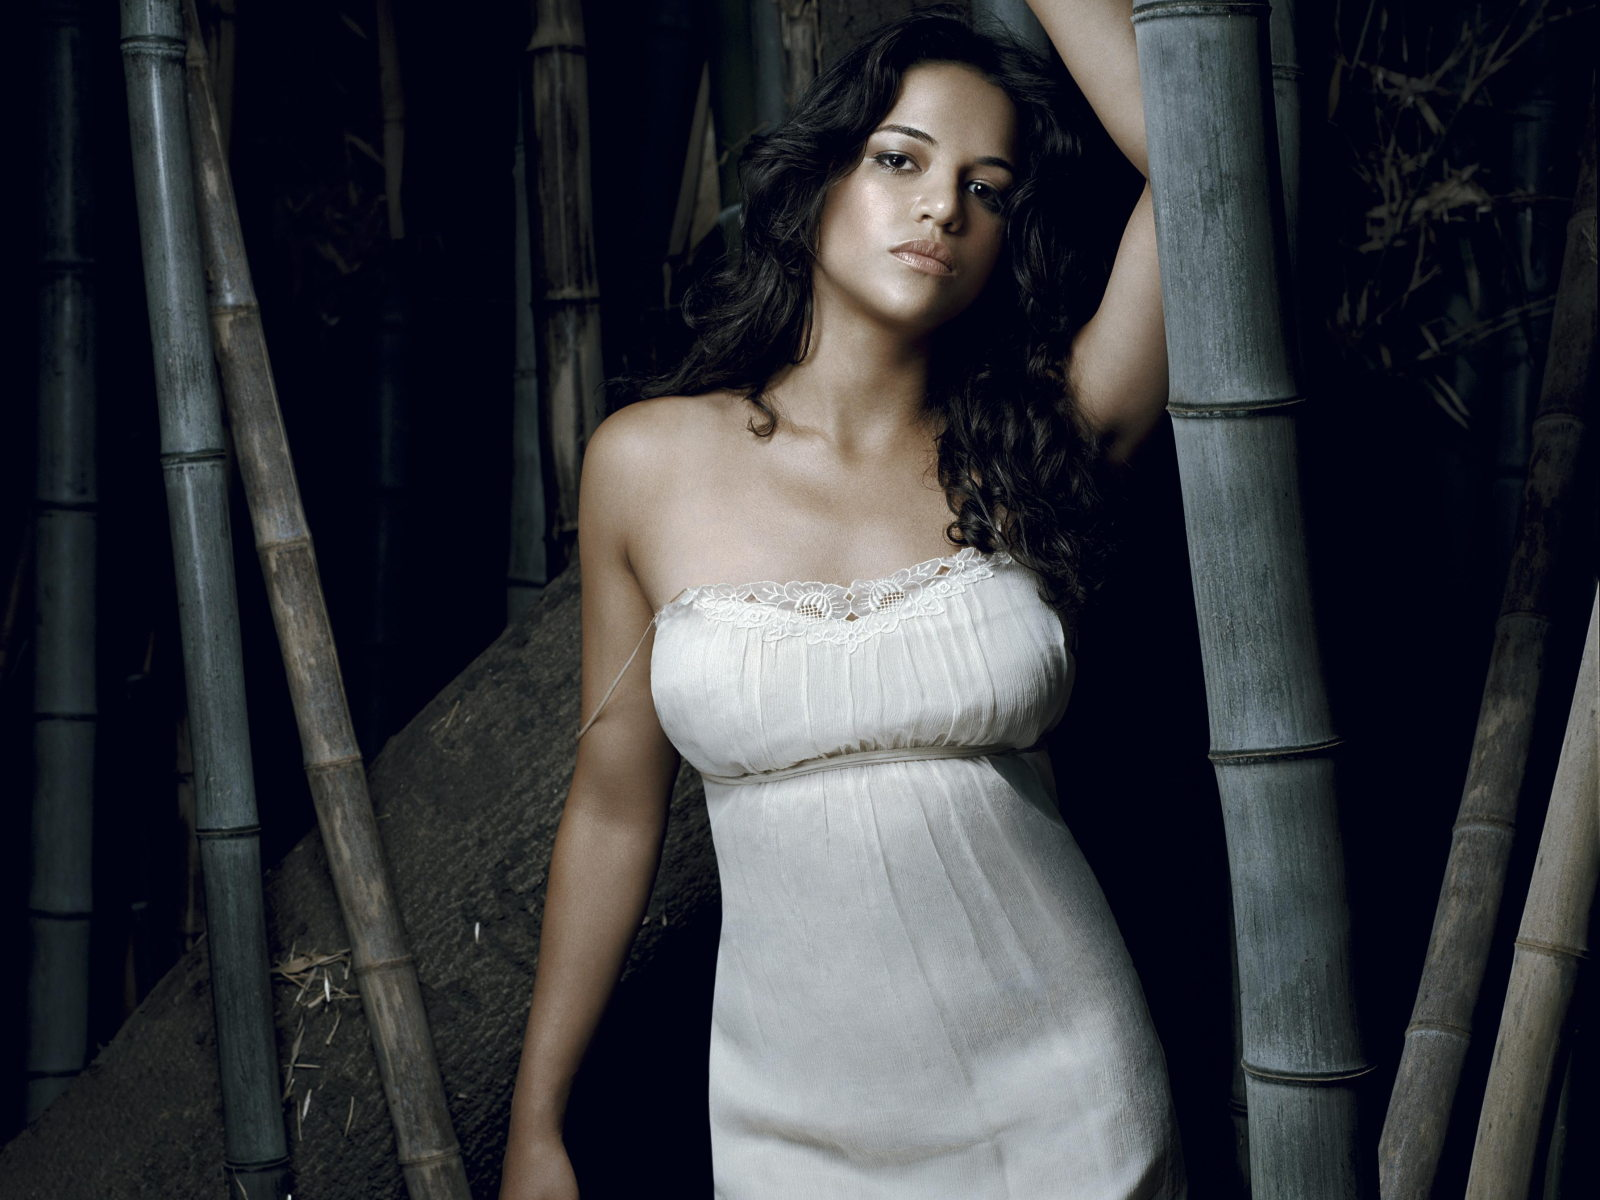 1600x1200 - Michelle Rodriguez Wallpapers 27